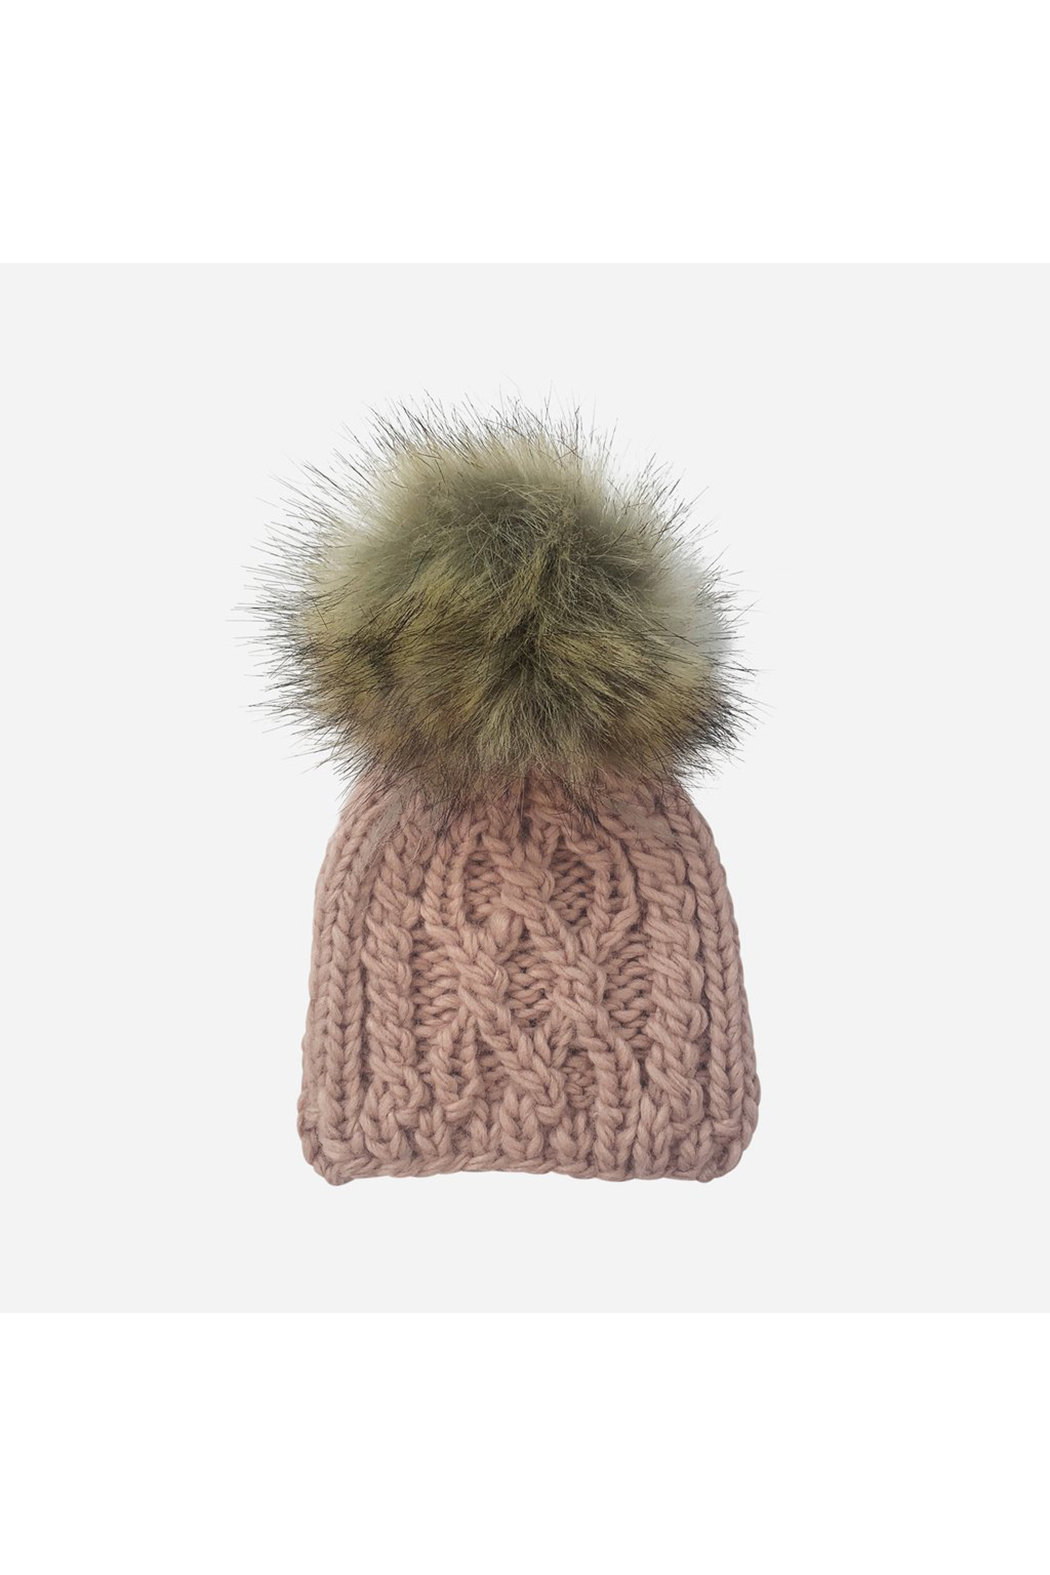 The Blueberry Hill Cable Knit Hat With Fur Pom Pom - Front Cropped Image